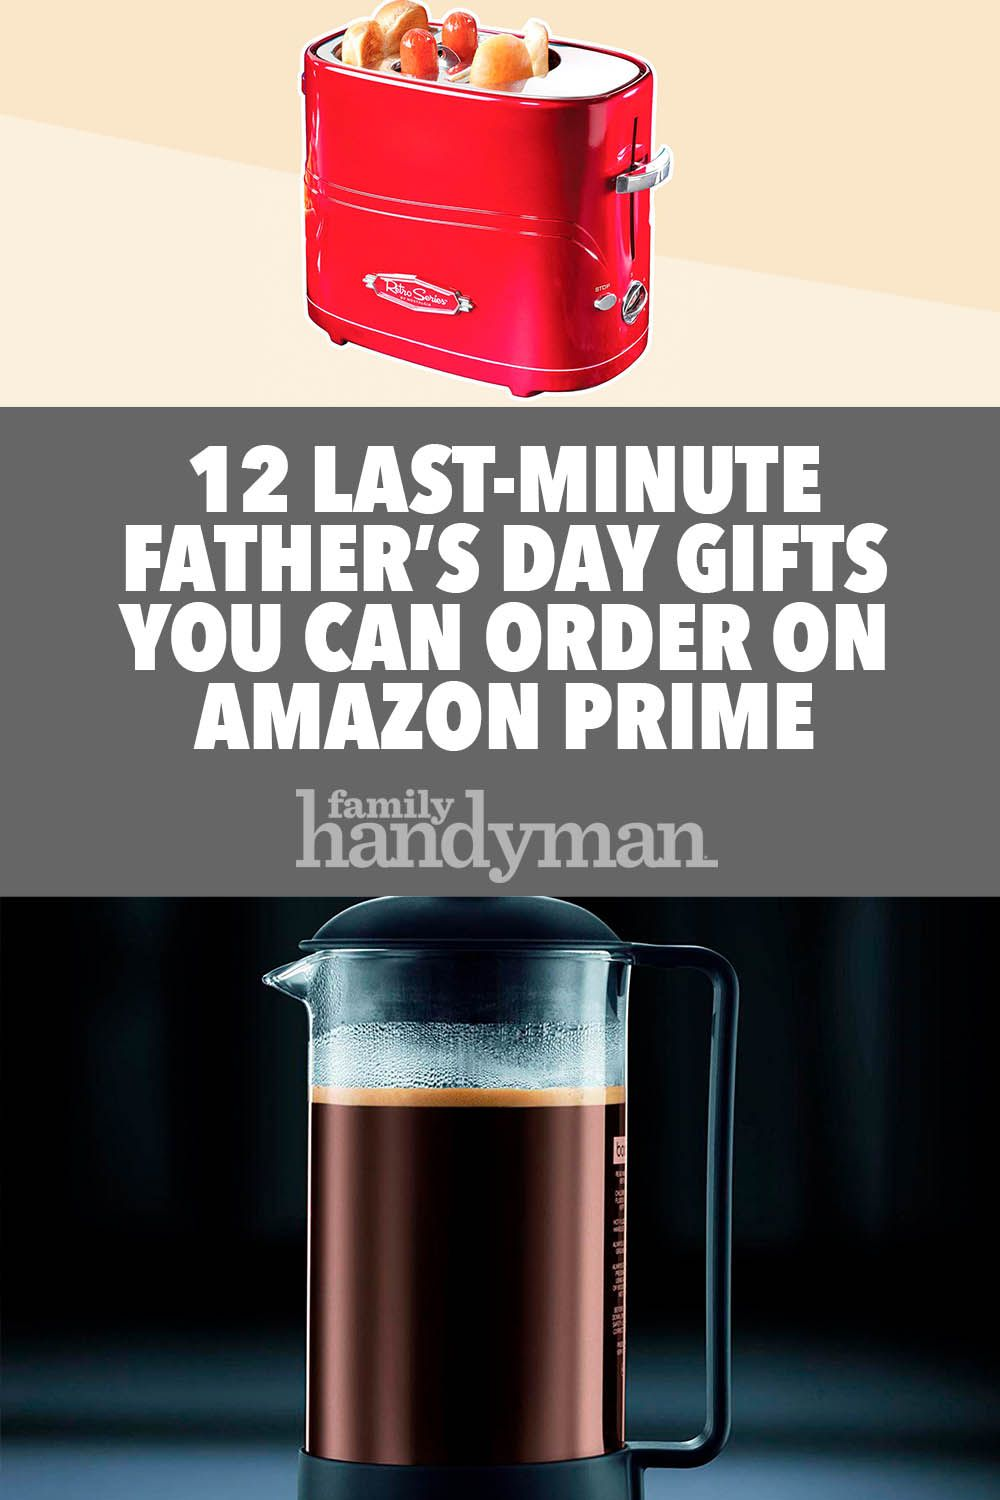 father's day food gifts amazon